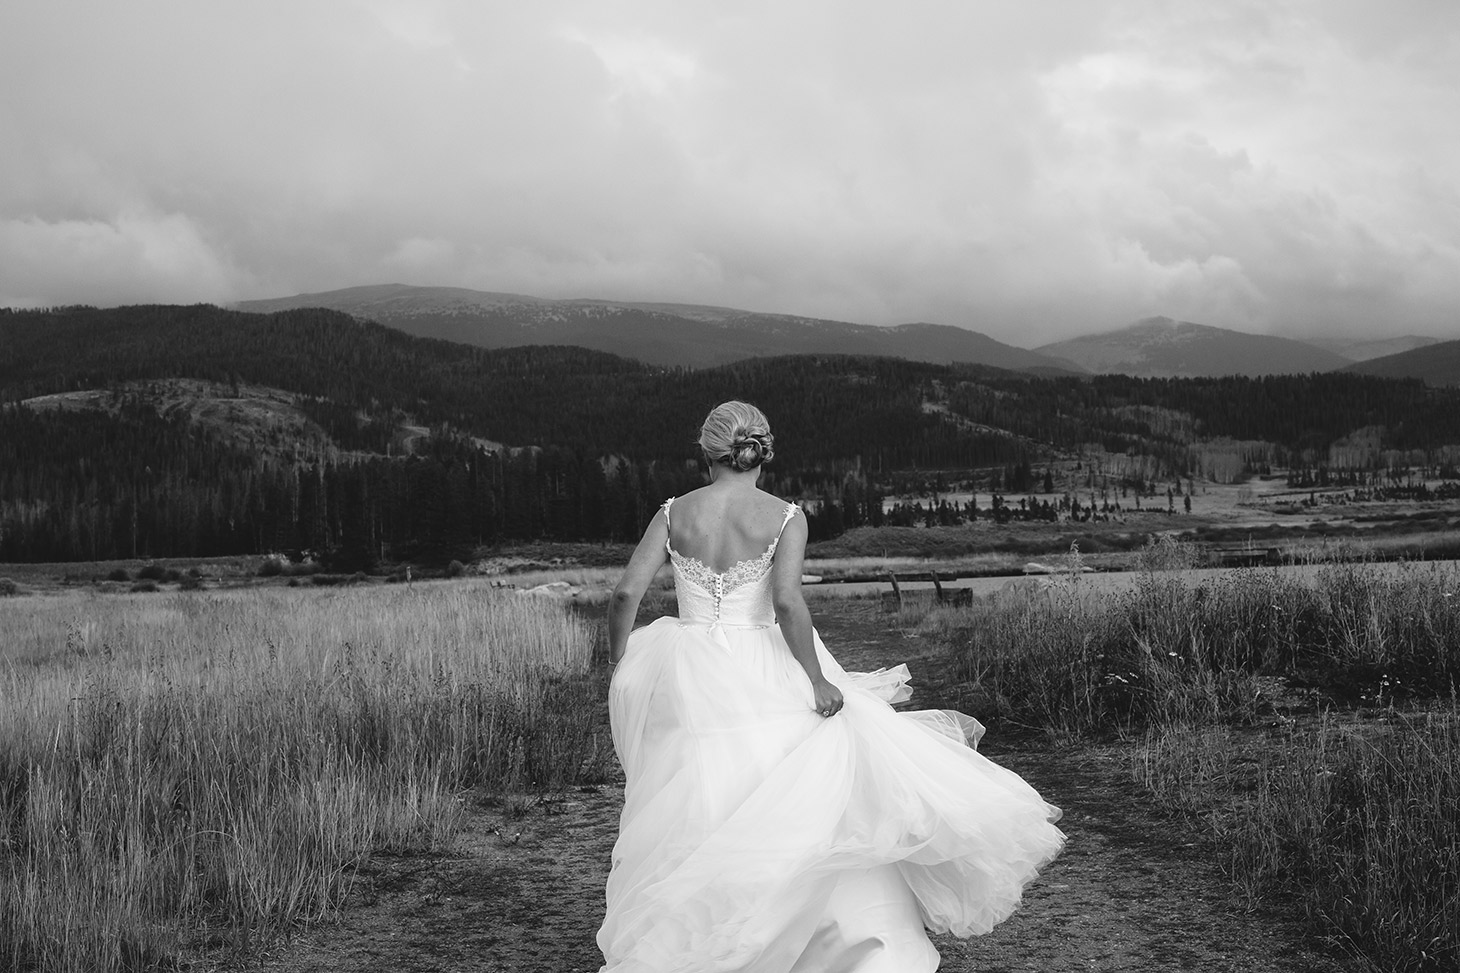 Megan-Newton-Photography-Best-Wedding-Photos-2015-192